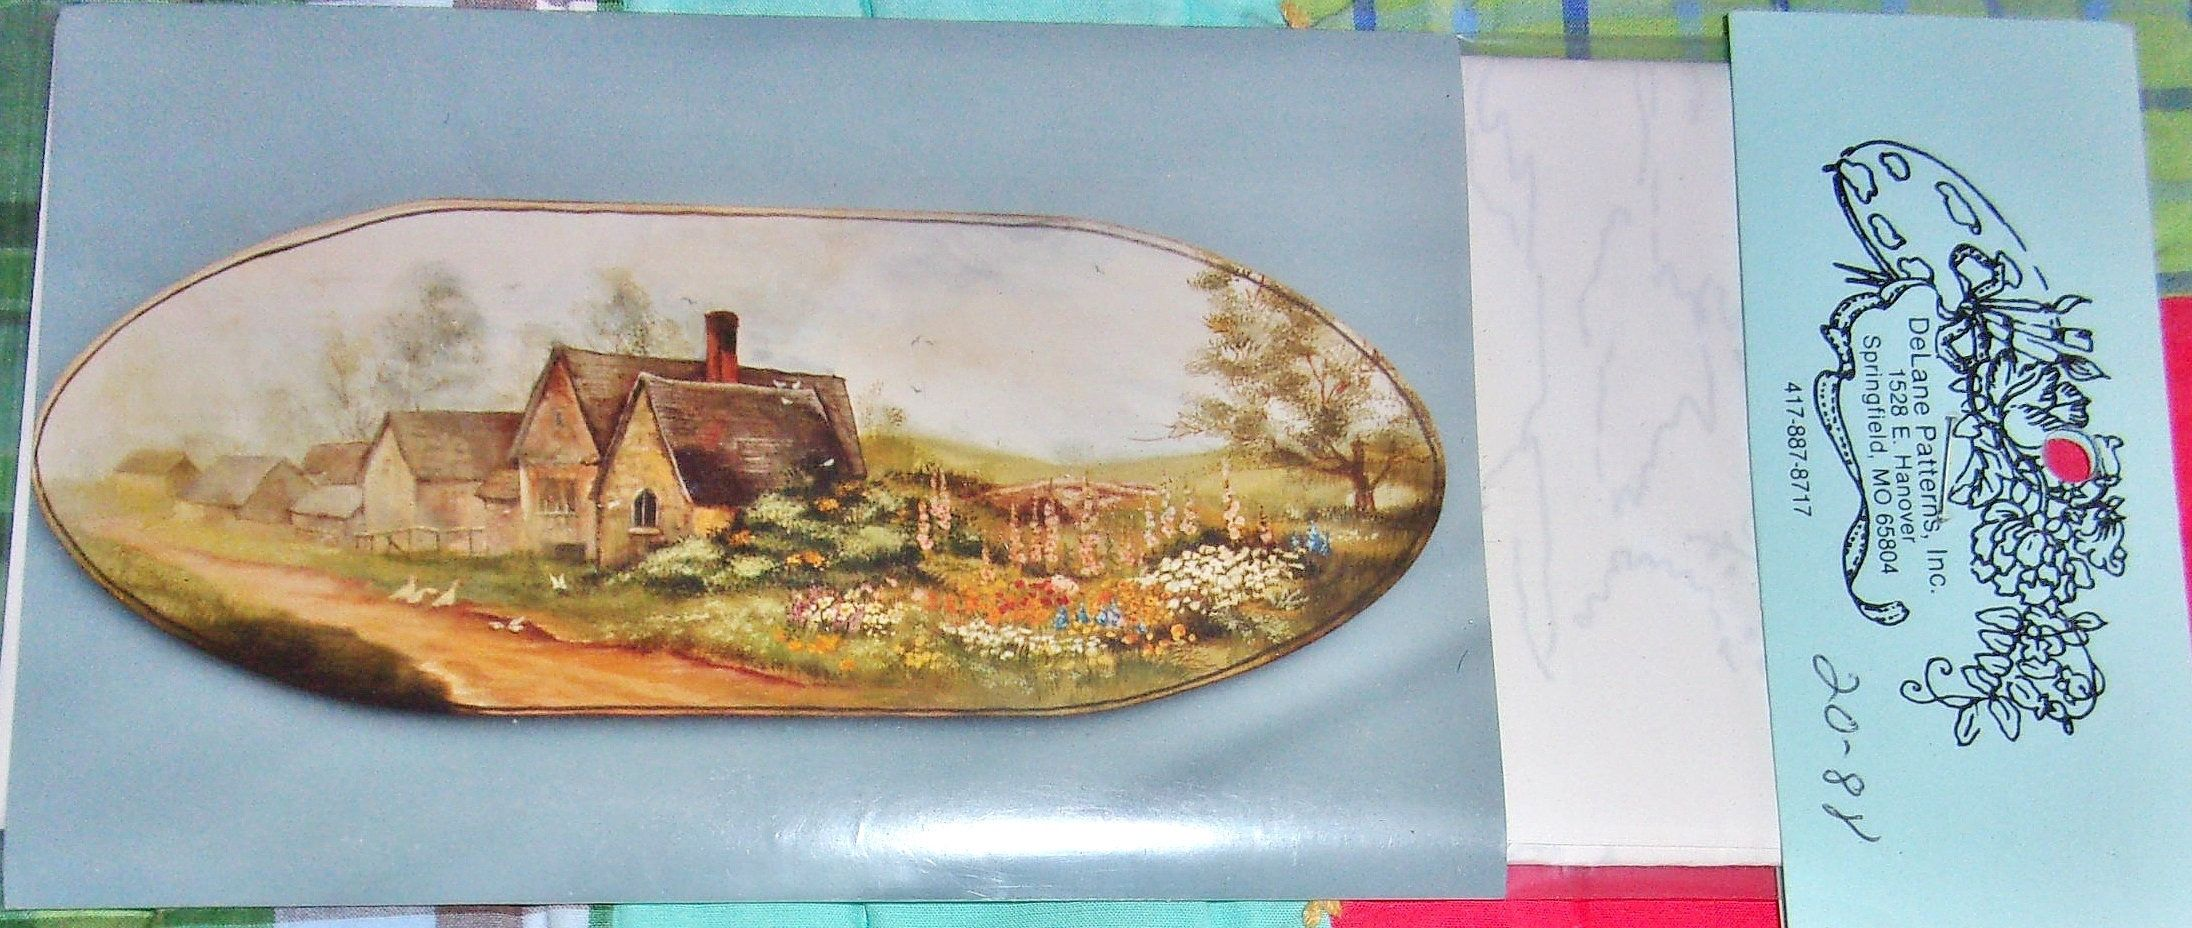 Cottage Garden Vtg 1988 DeLane Lange Tole Painting Pattern Paint Rural English Country Scene Rustic Farm House Flowers Home Decor Sealed NIP #tolepainting